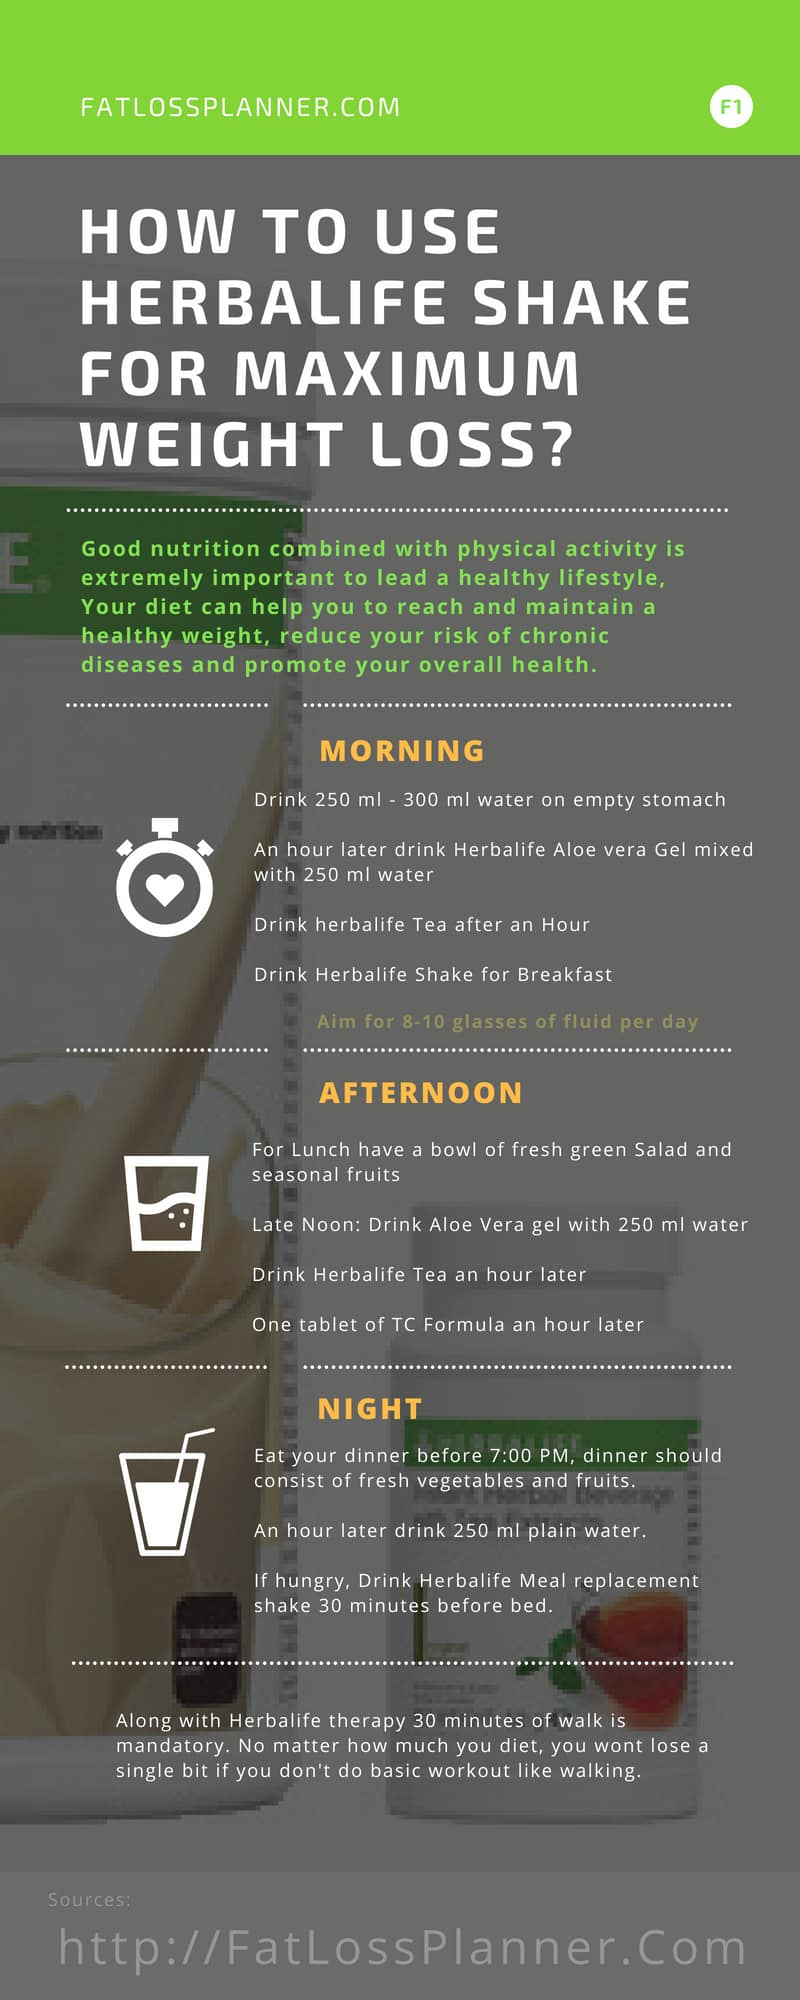 How to use Herbalife meal replacement shake for weight loss